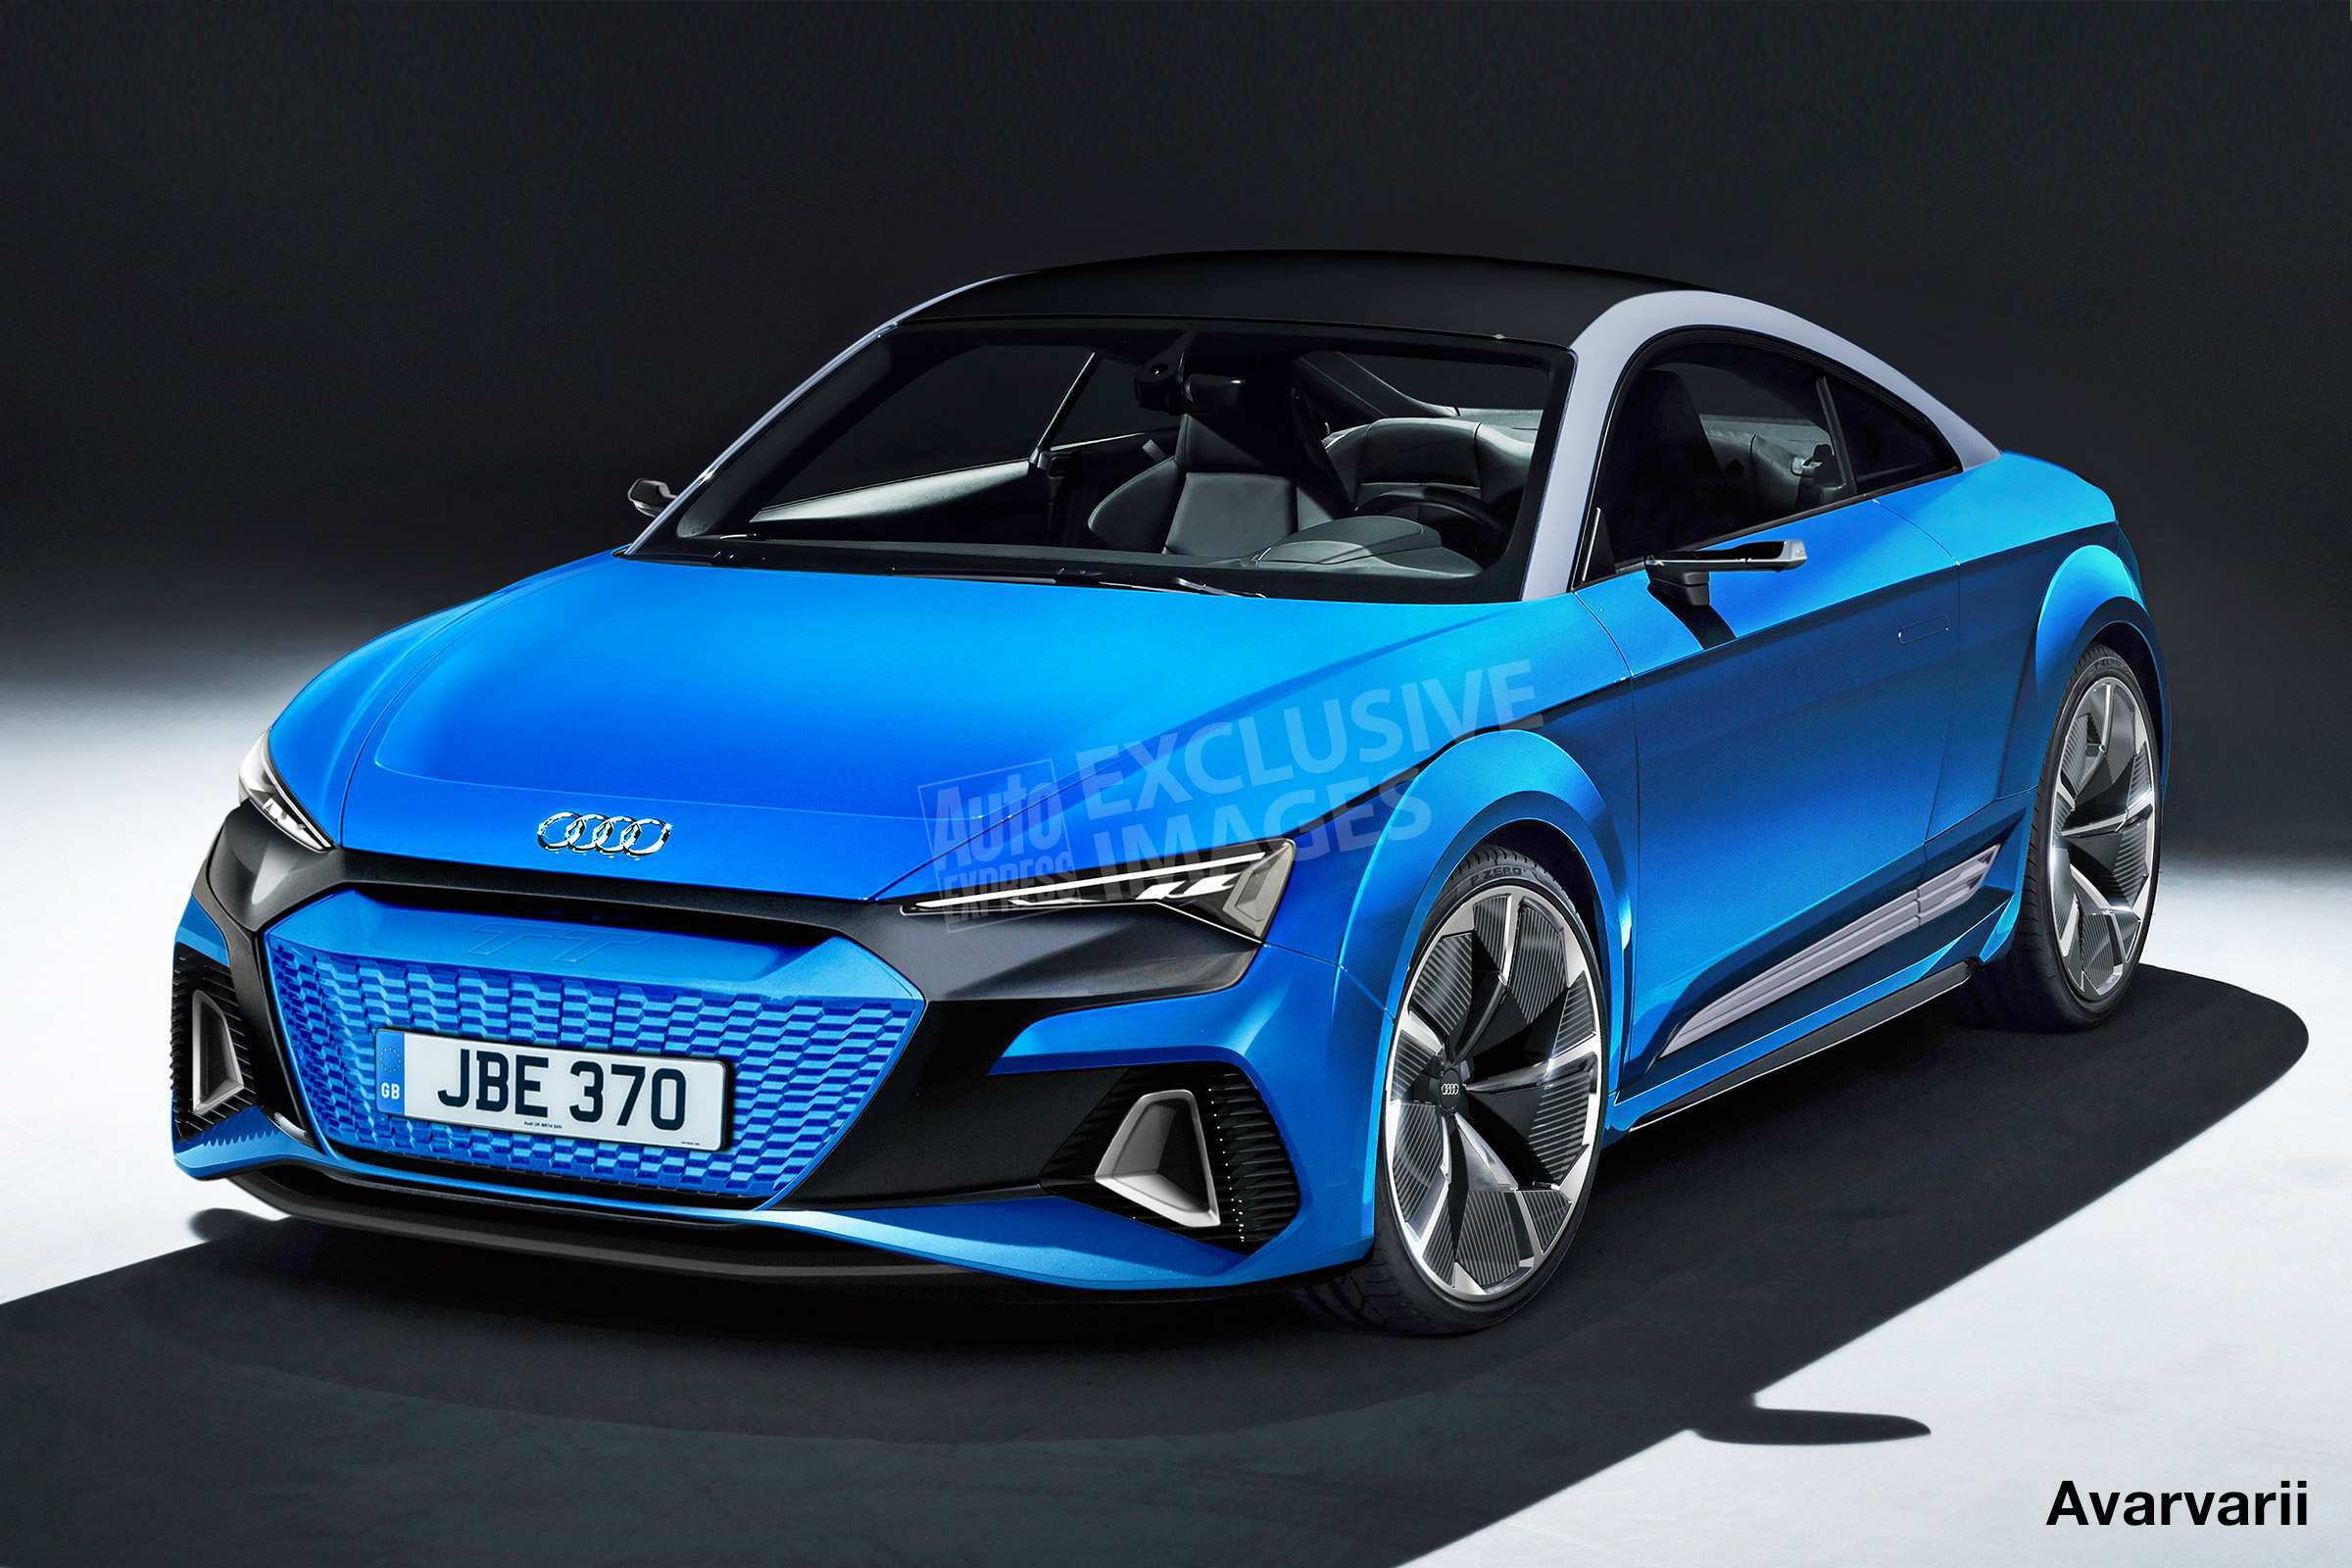 57 Great Audi Tt Coupe 2020 Research New for Audi Tt Coupe 2020